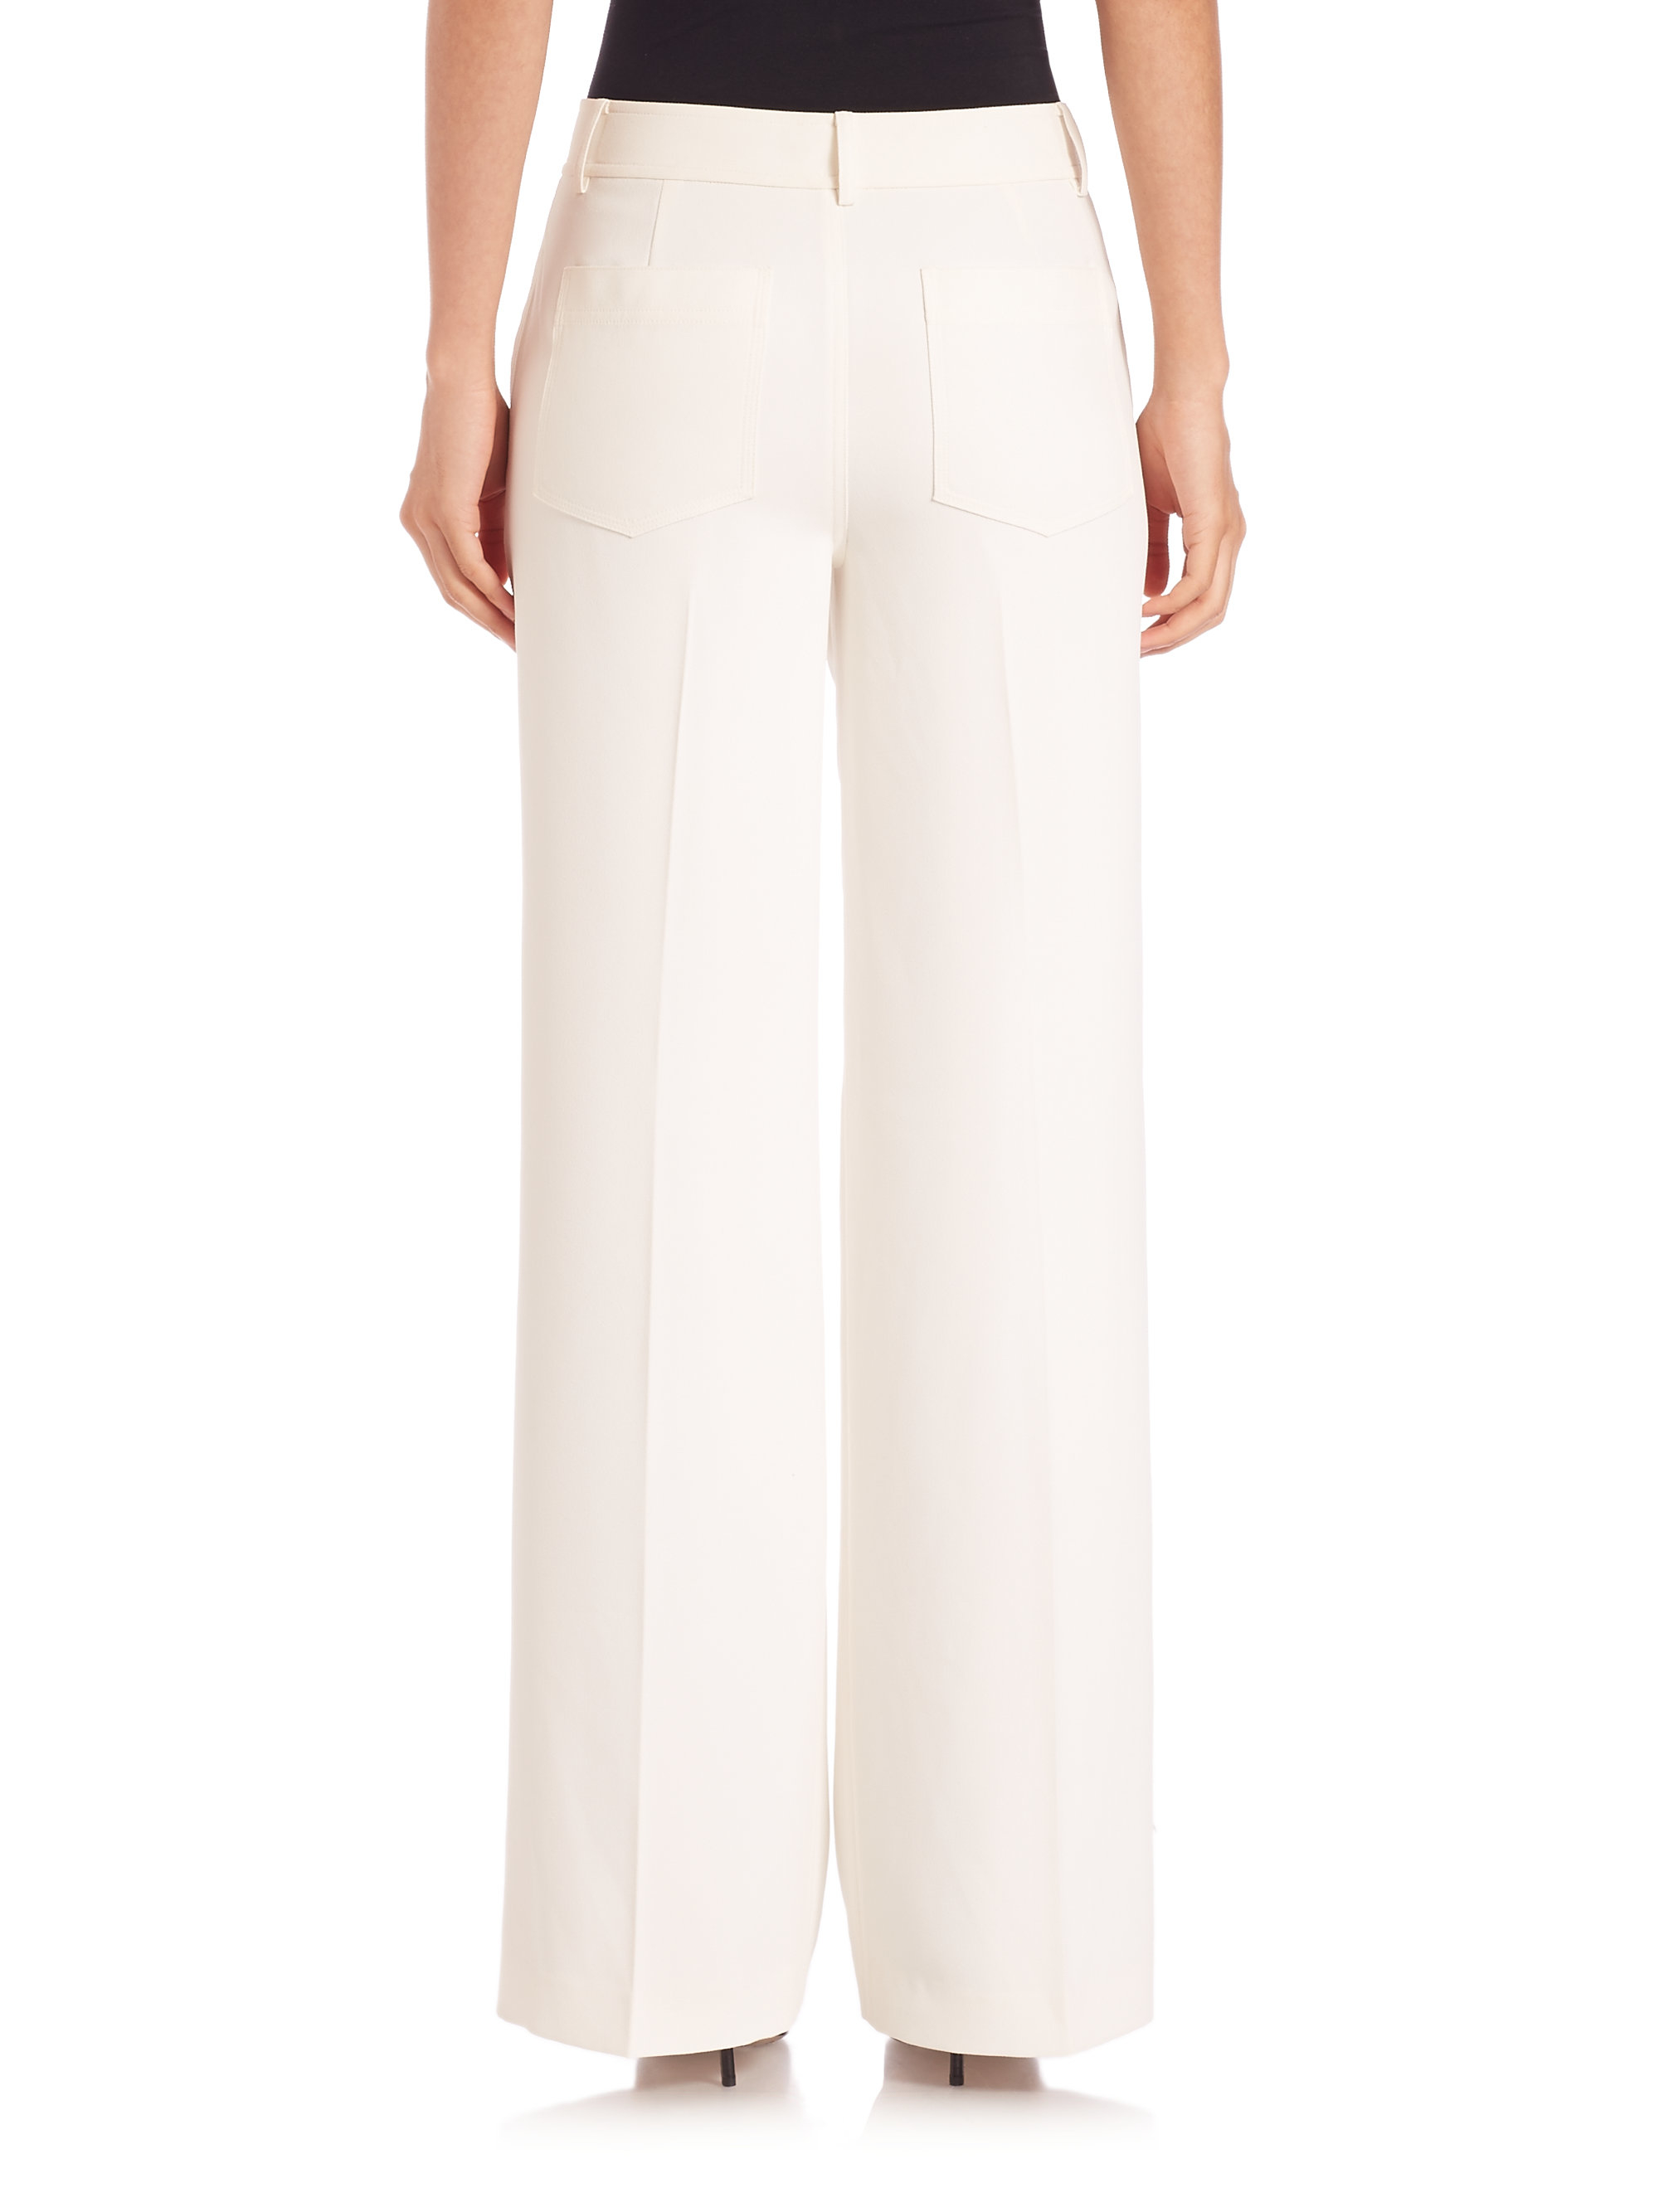 T by alexander wang Polyester Crepe Wide Leg Pants in Natural | Lyst